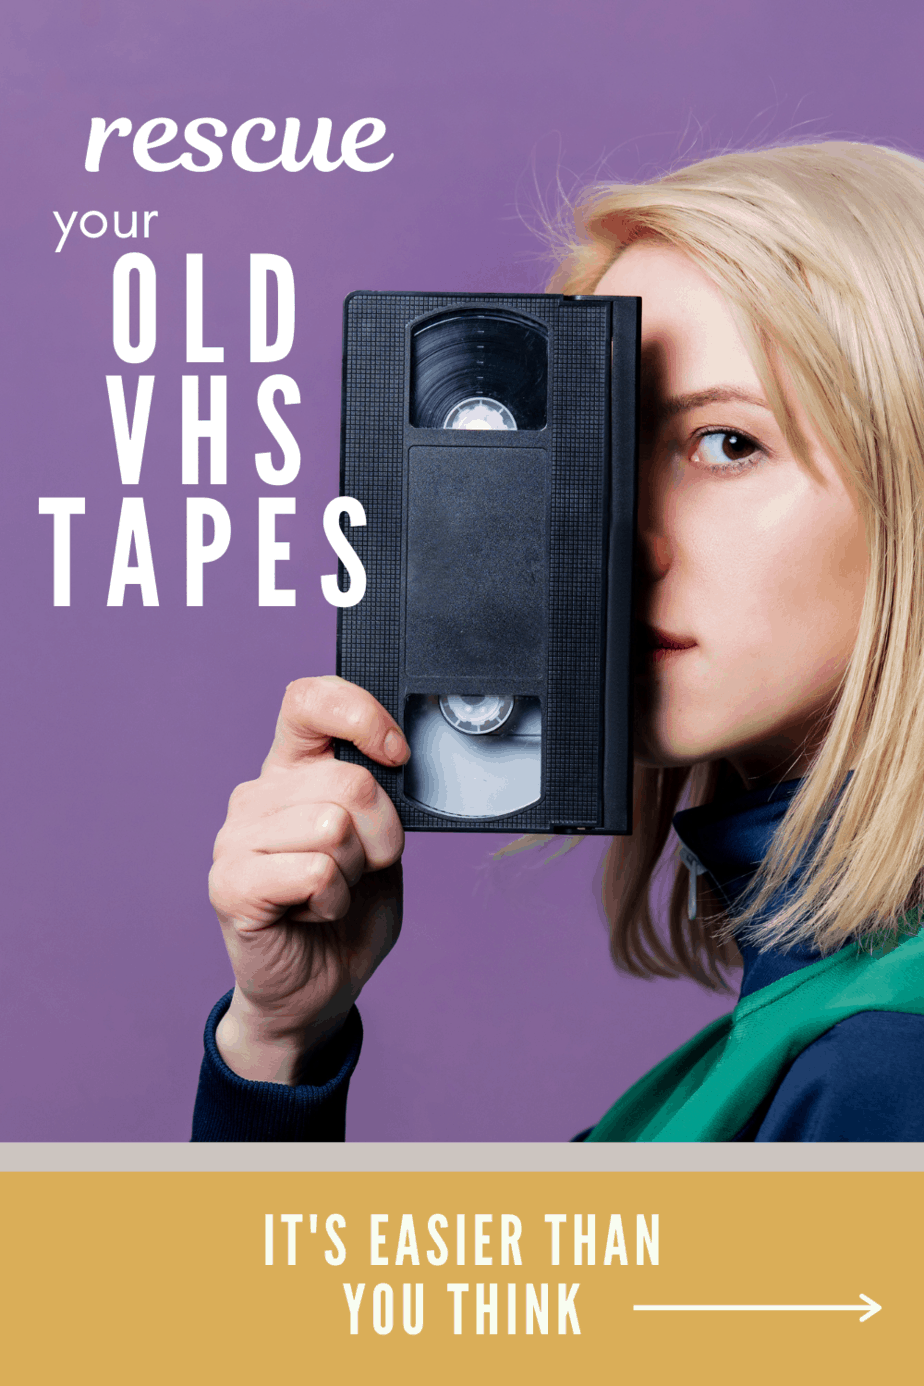 Rescue Old VHS Tapes